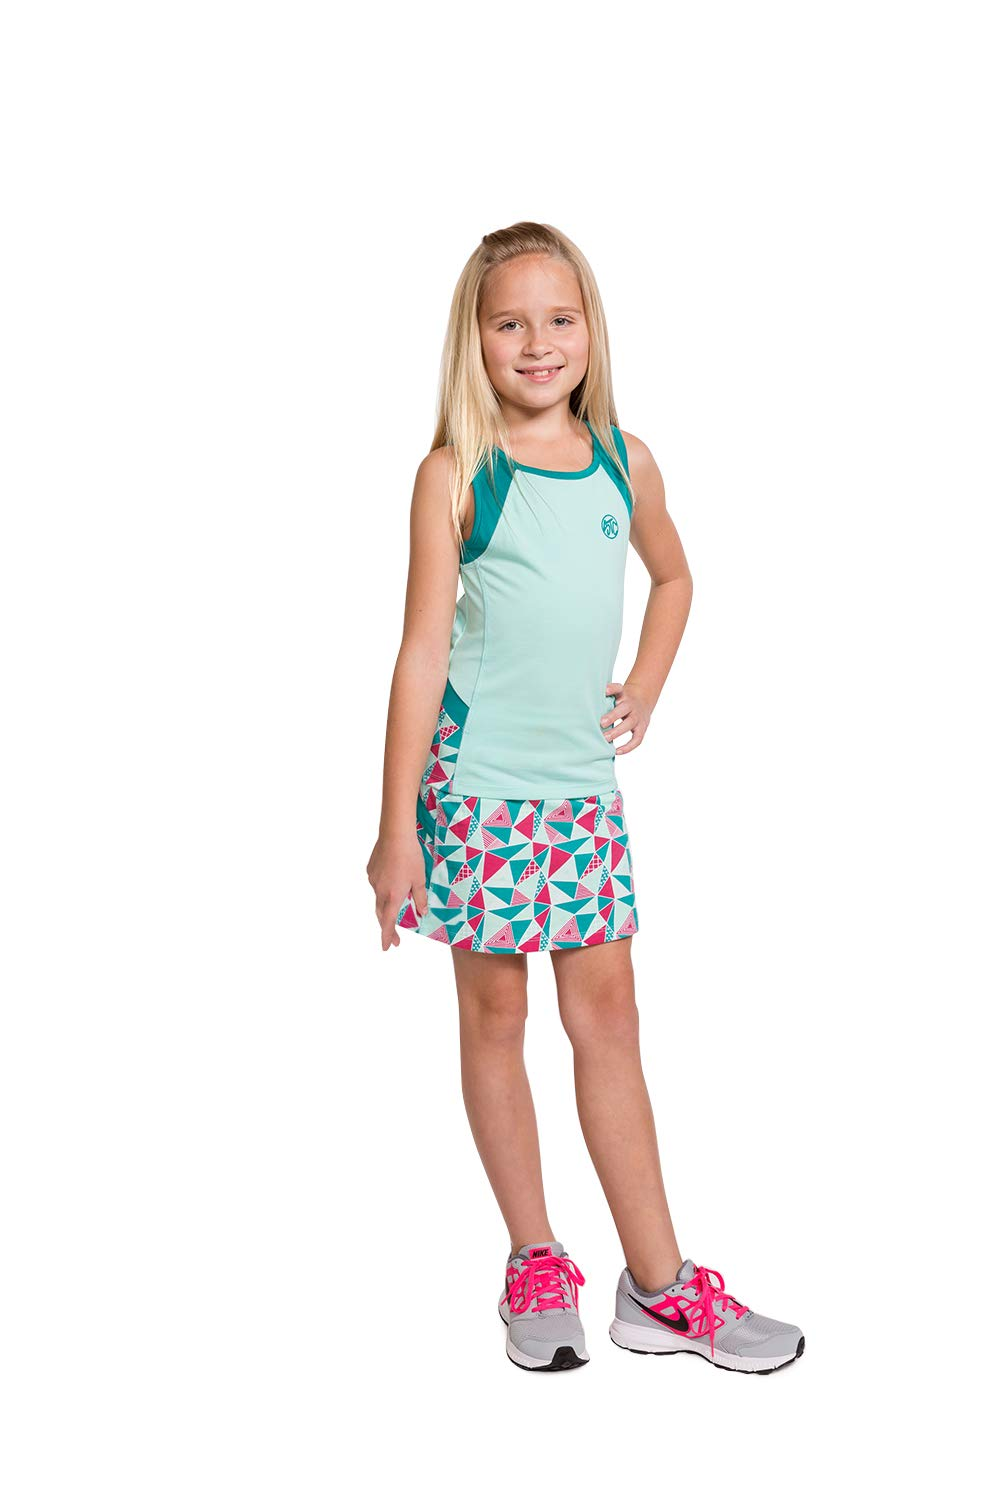 Girls Tennis & Golf Tank and Skirt Set with Built in Shorts - Beach Glass Size/Aqua Size S